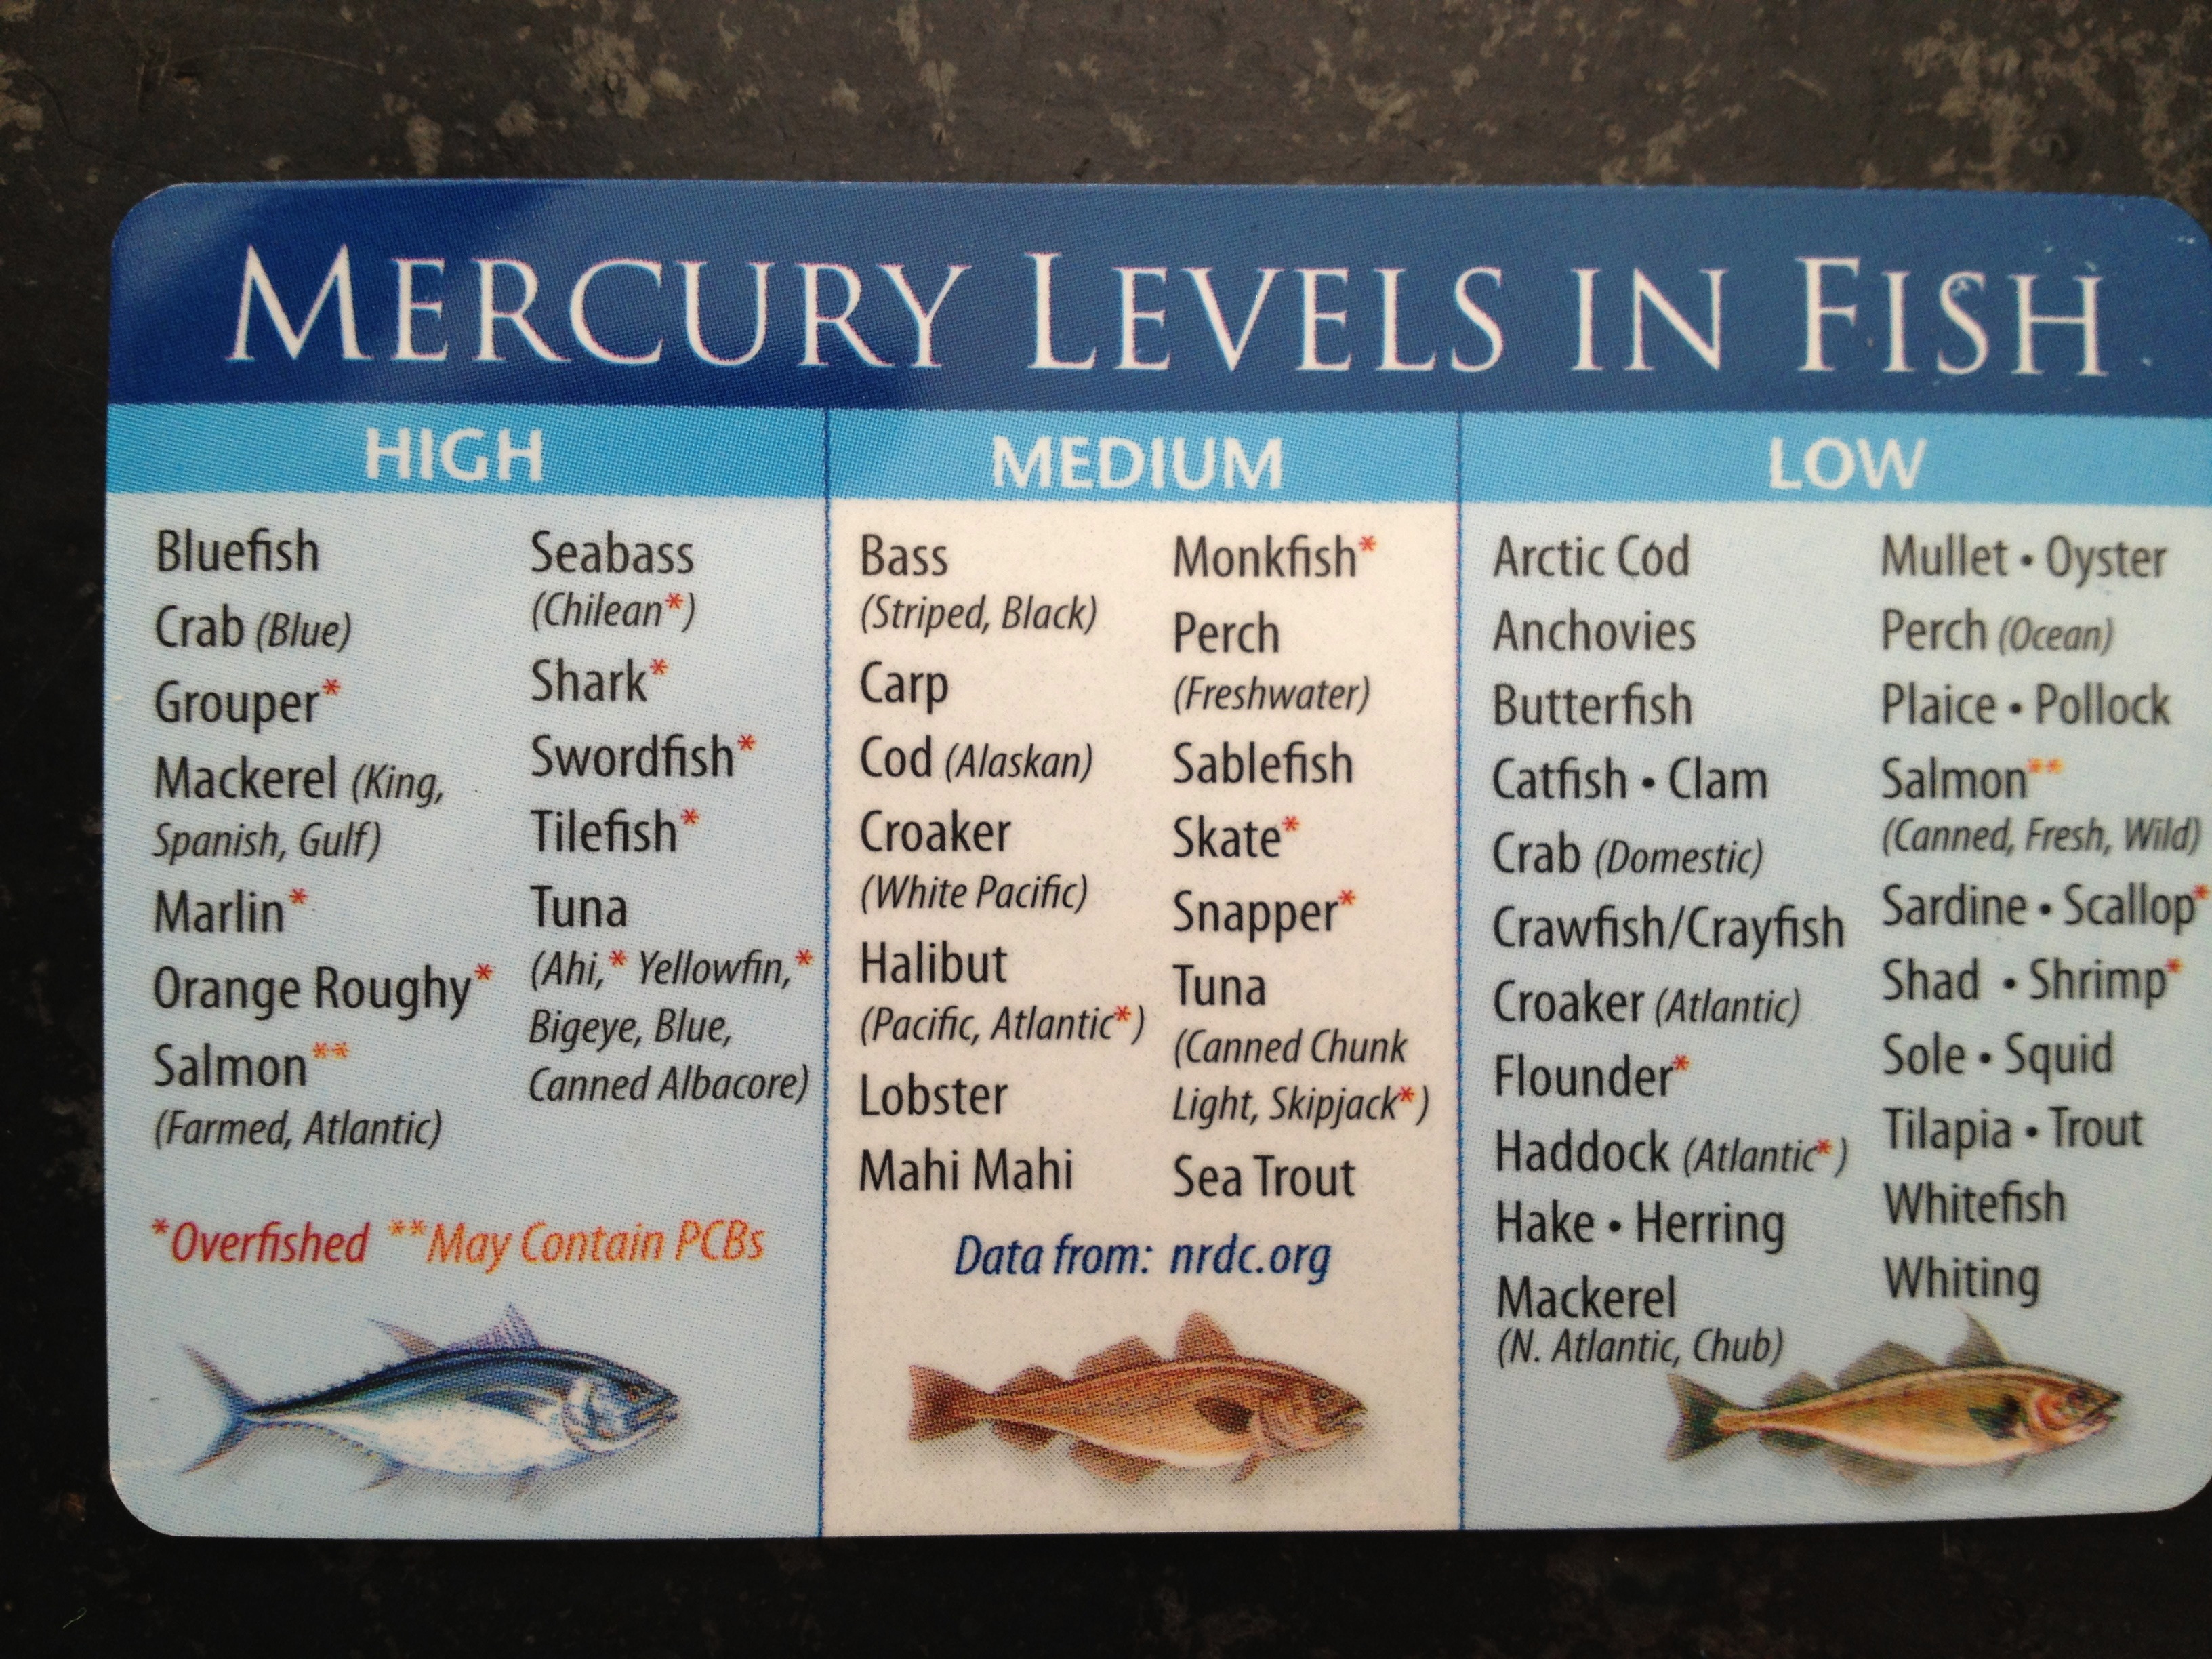 heavy metal toxicity in fish and seafood